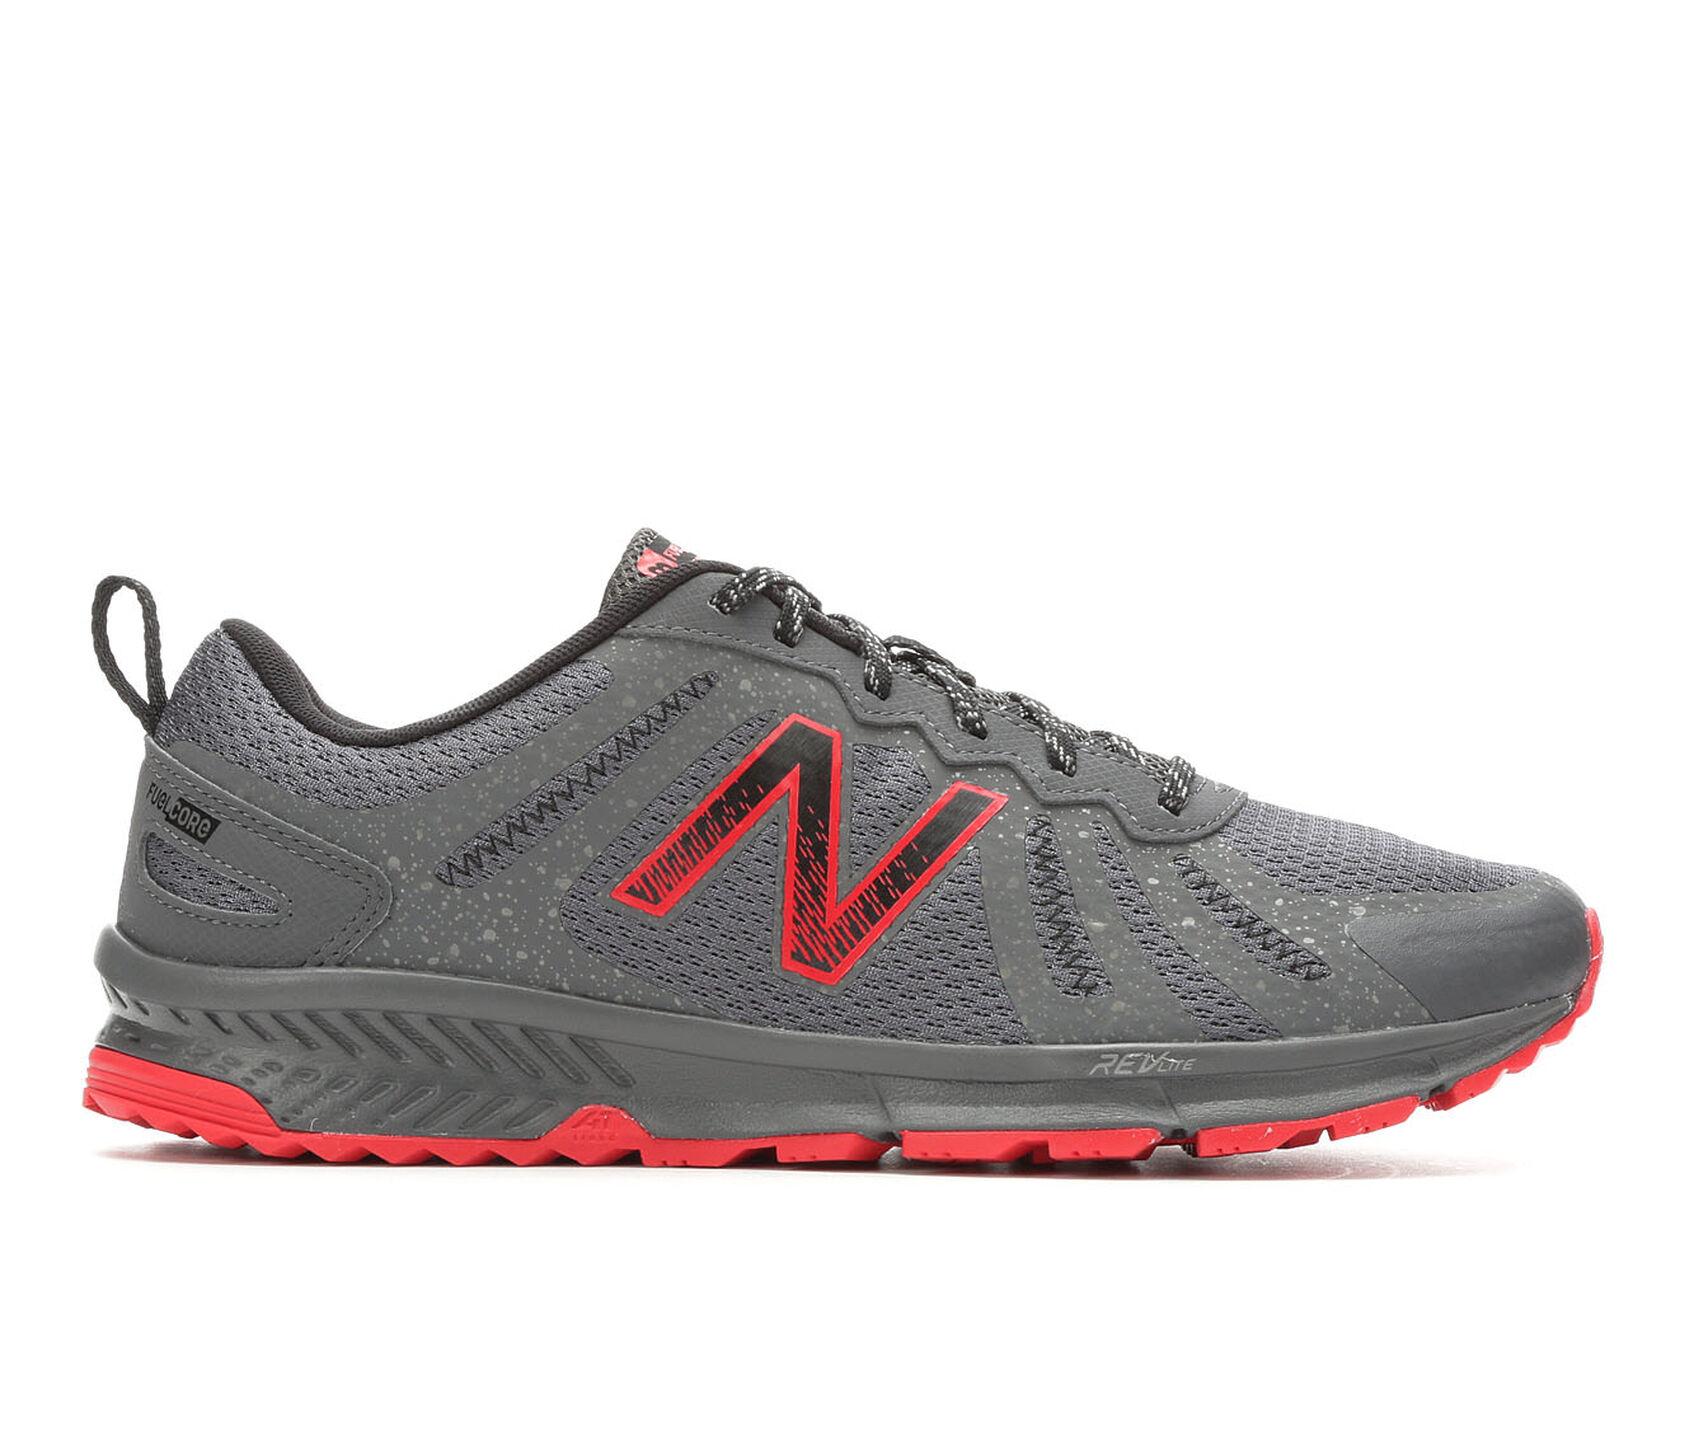 c529864efbb7fe Men's New Balance MT590 Trail Running Shoes | Shoe Carnival